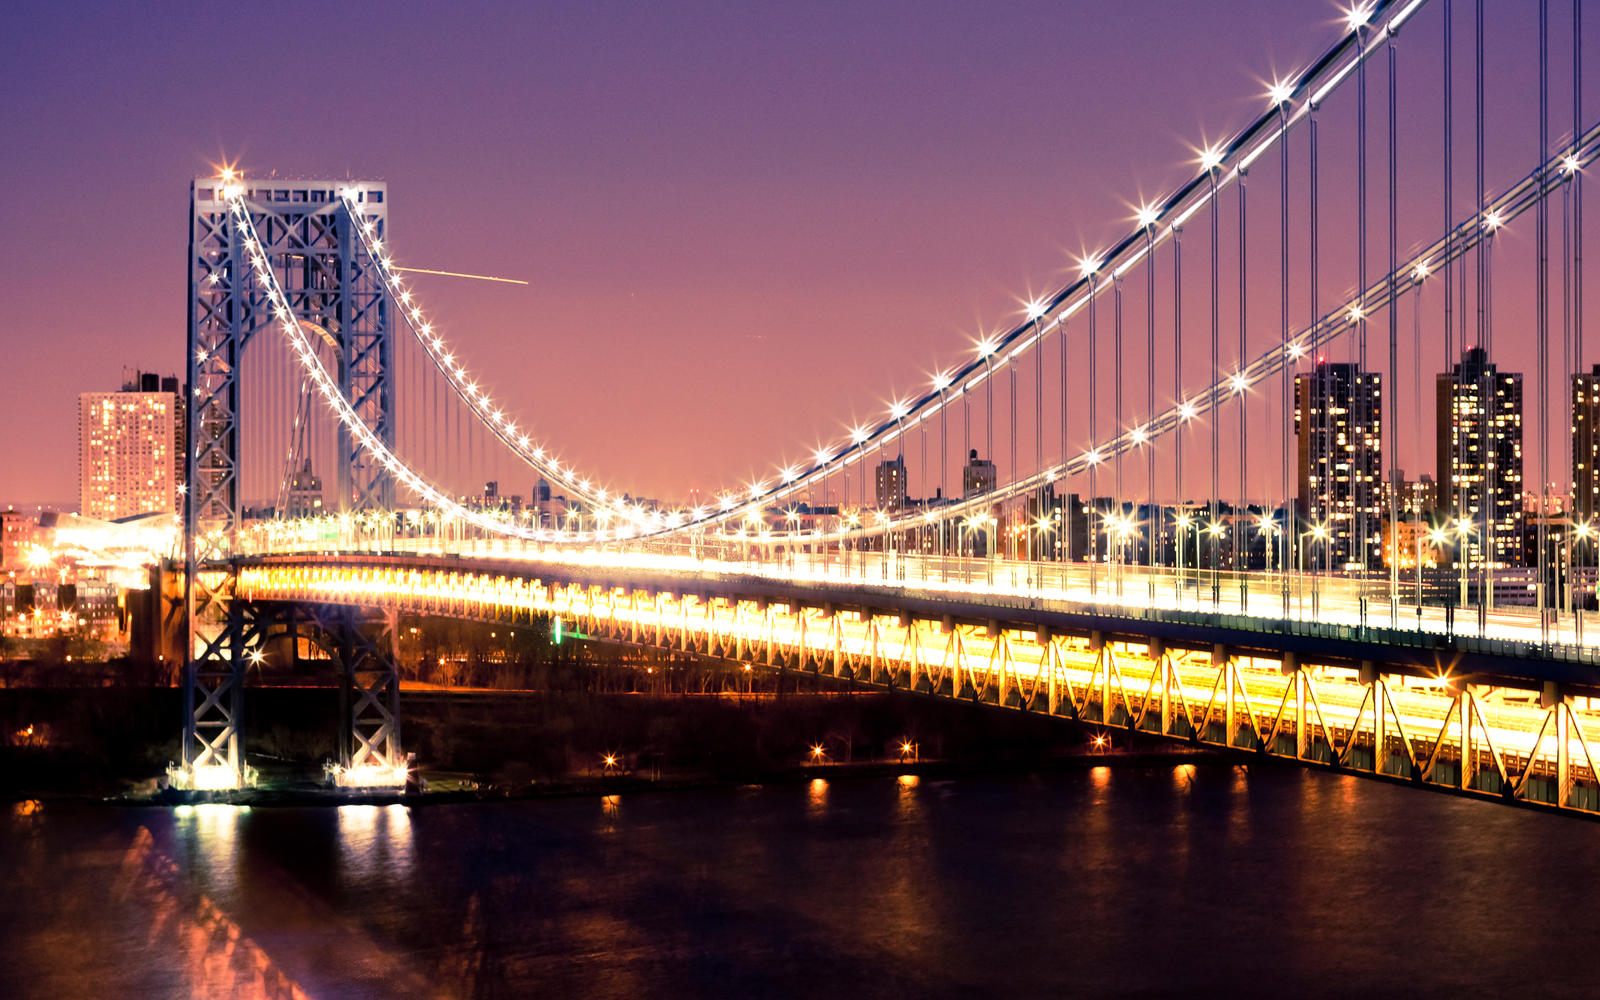 GWB at Dusk by namespace on DeviantArt